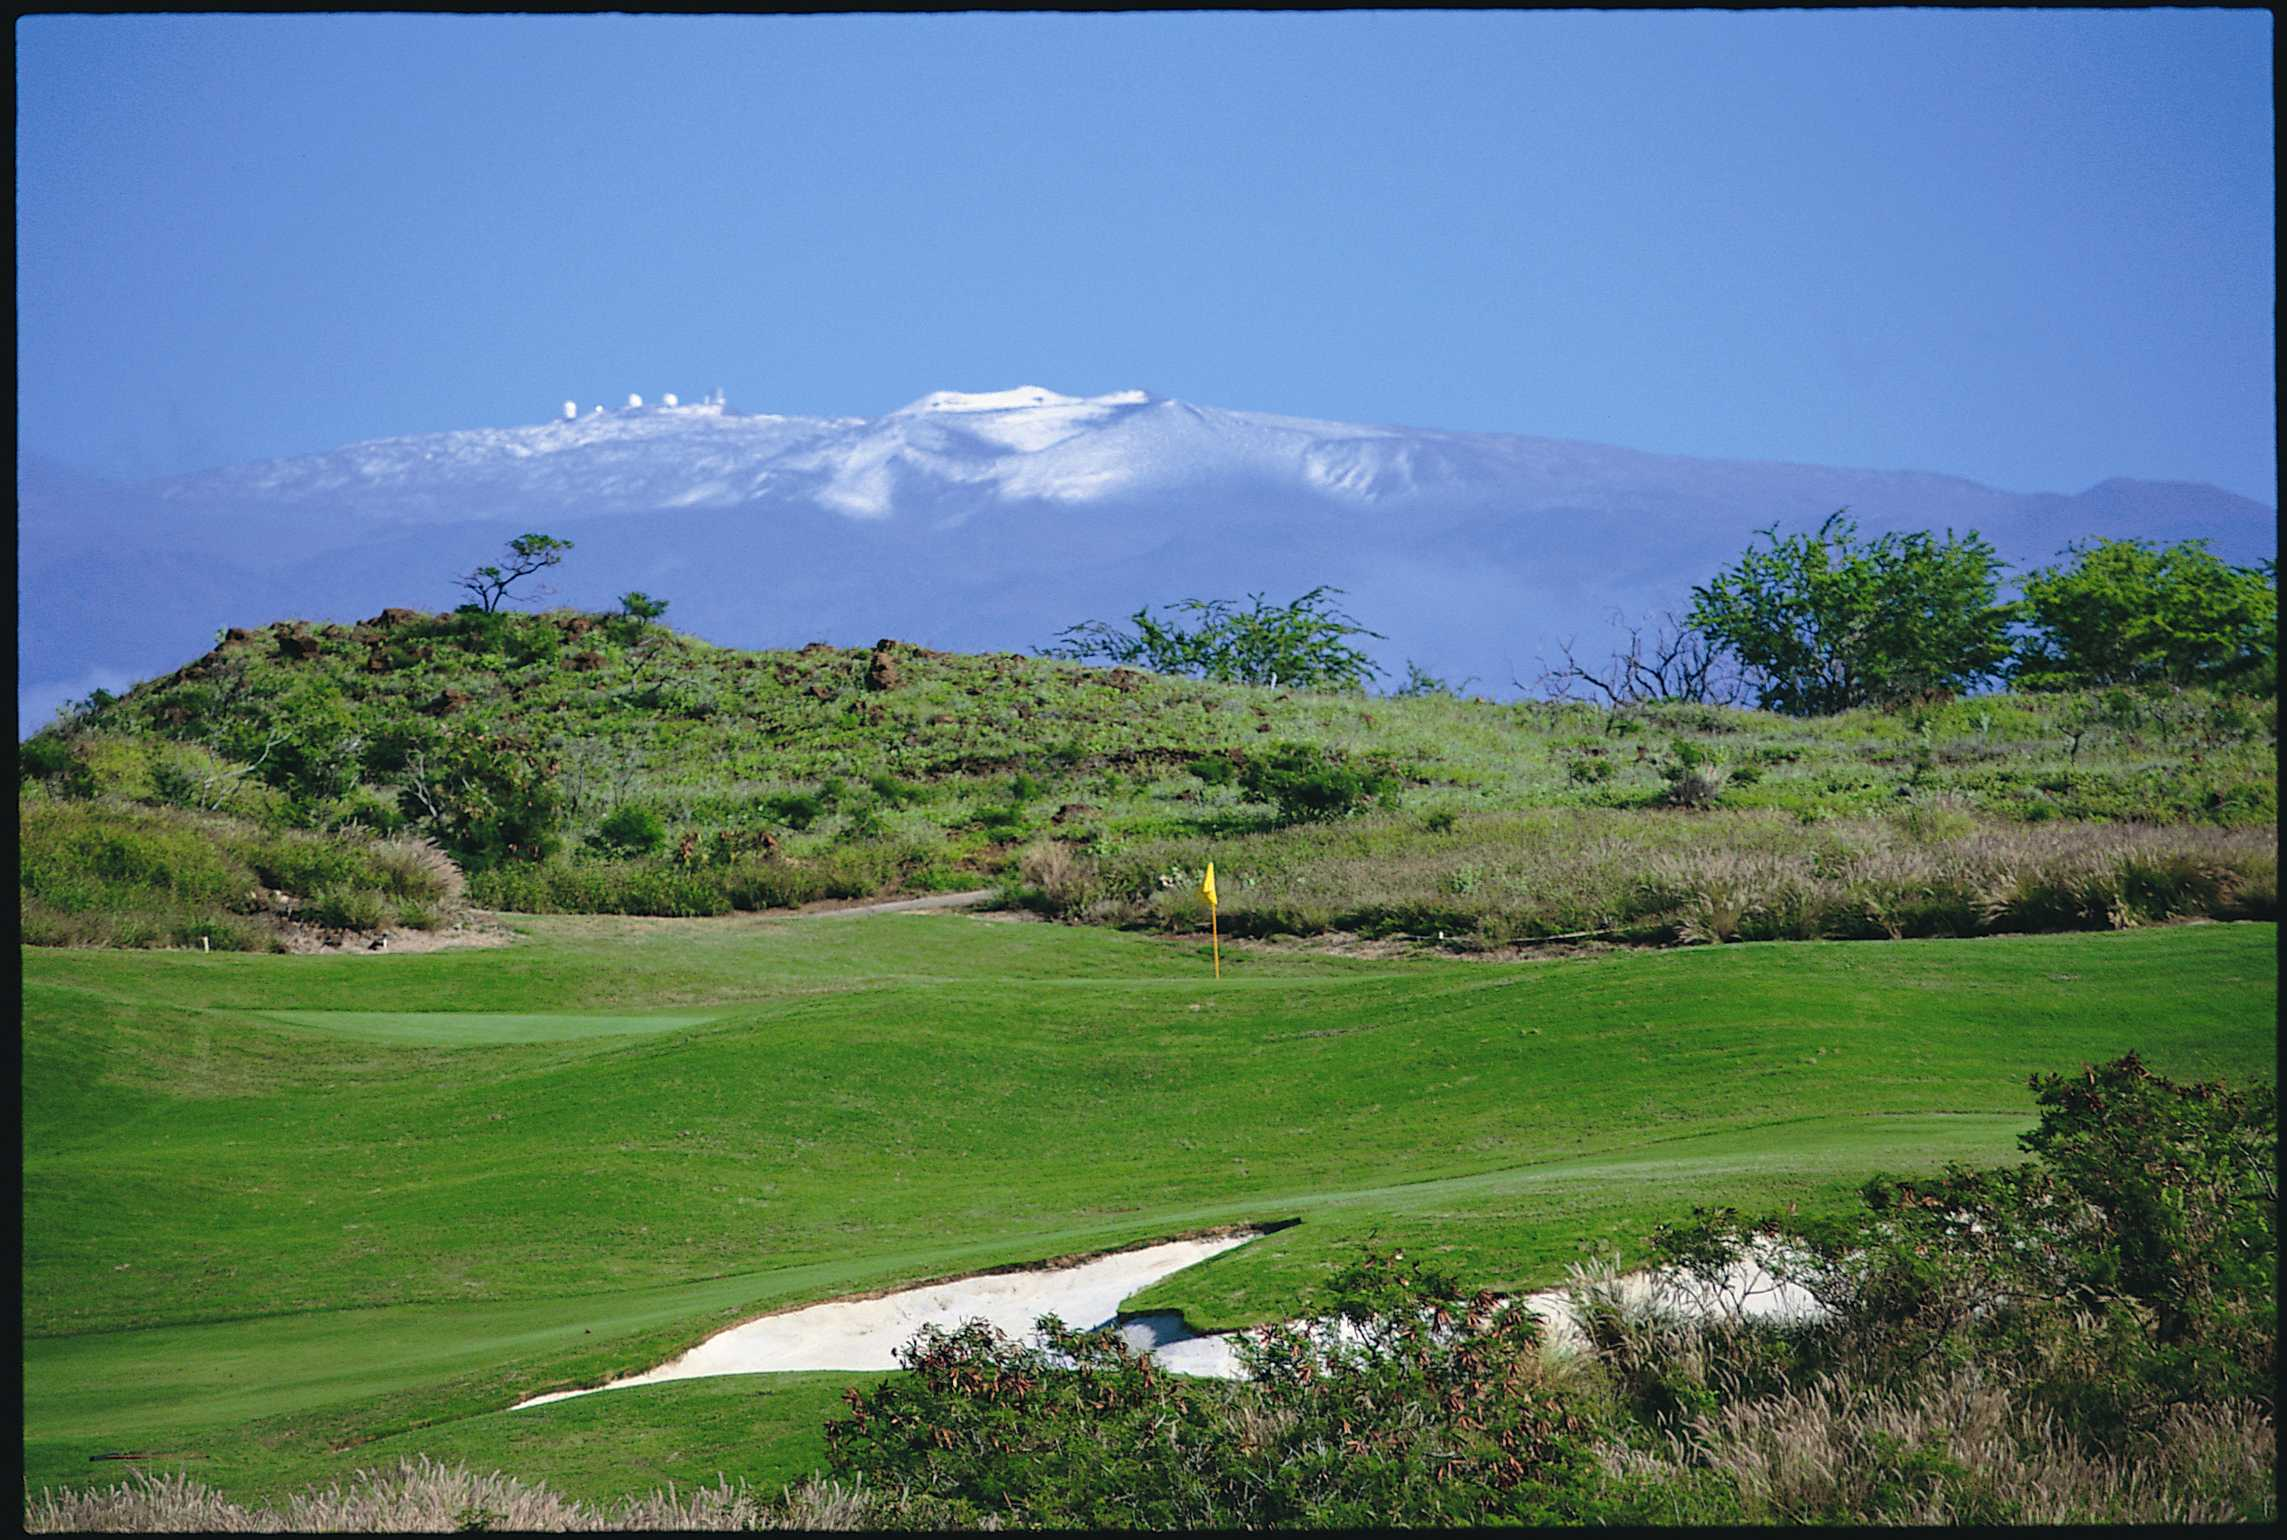 Imiola Church Golf Tournament Saturday, February 27 at Hapuna Golf Course. A first for the 150-year-old-landmark of Church Row in Waimea, the tournament is a fundraiser for Imiola's mission to feed hungry families, an ongoing program designed to fill a growing need.